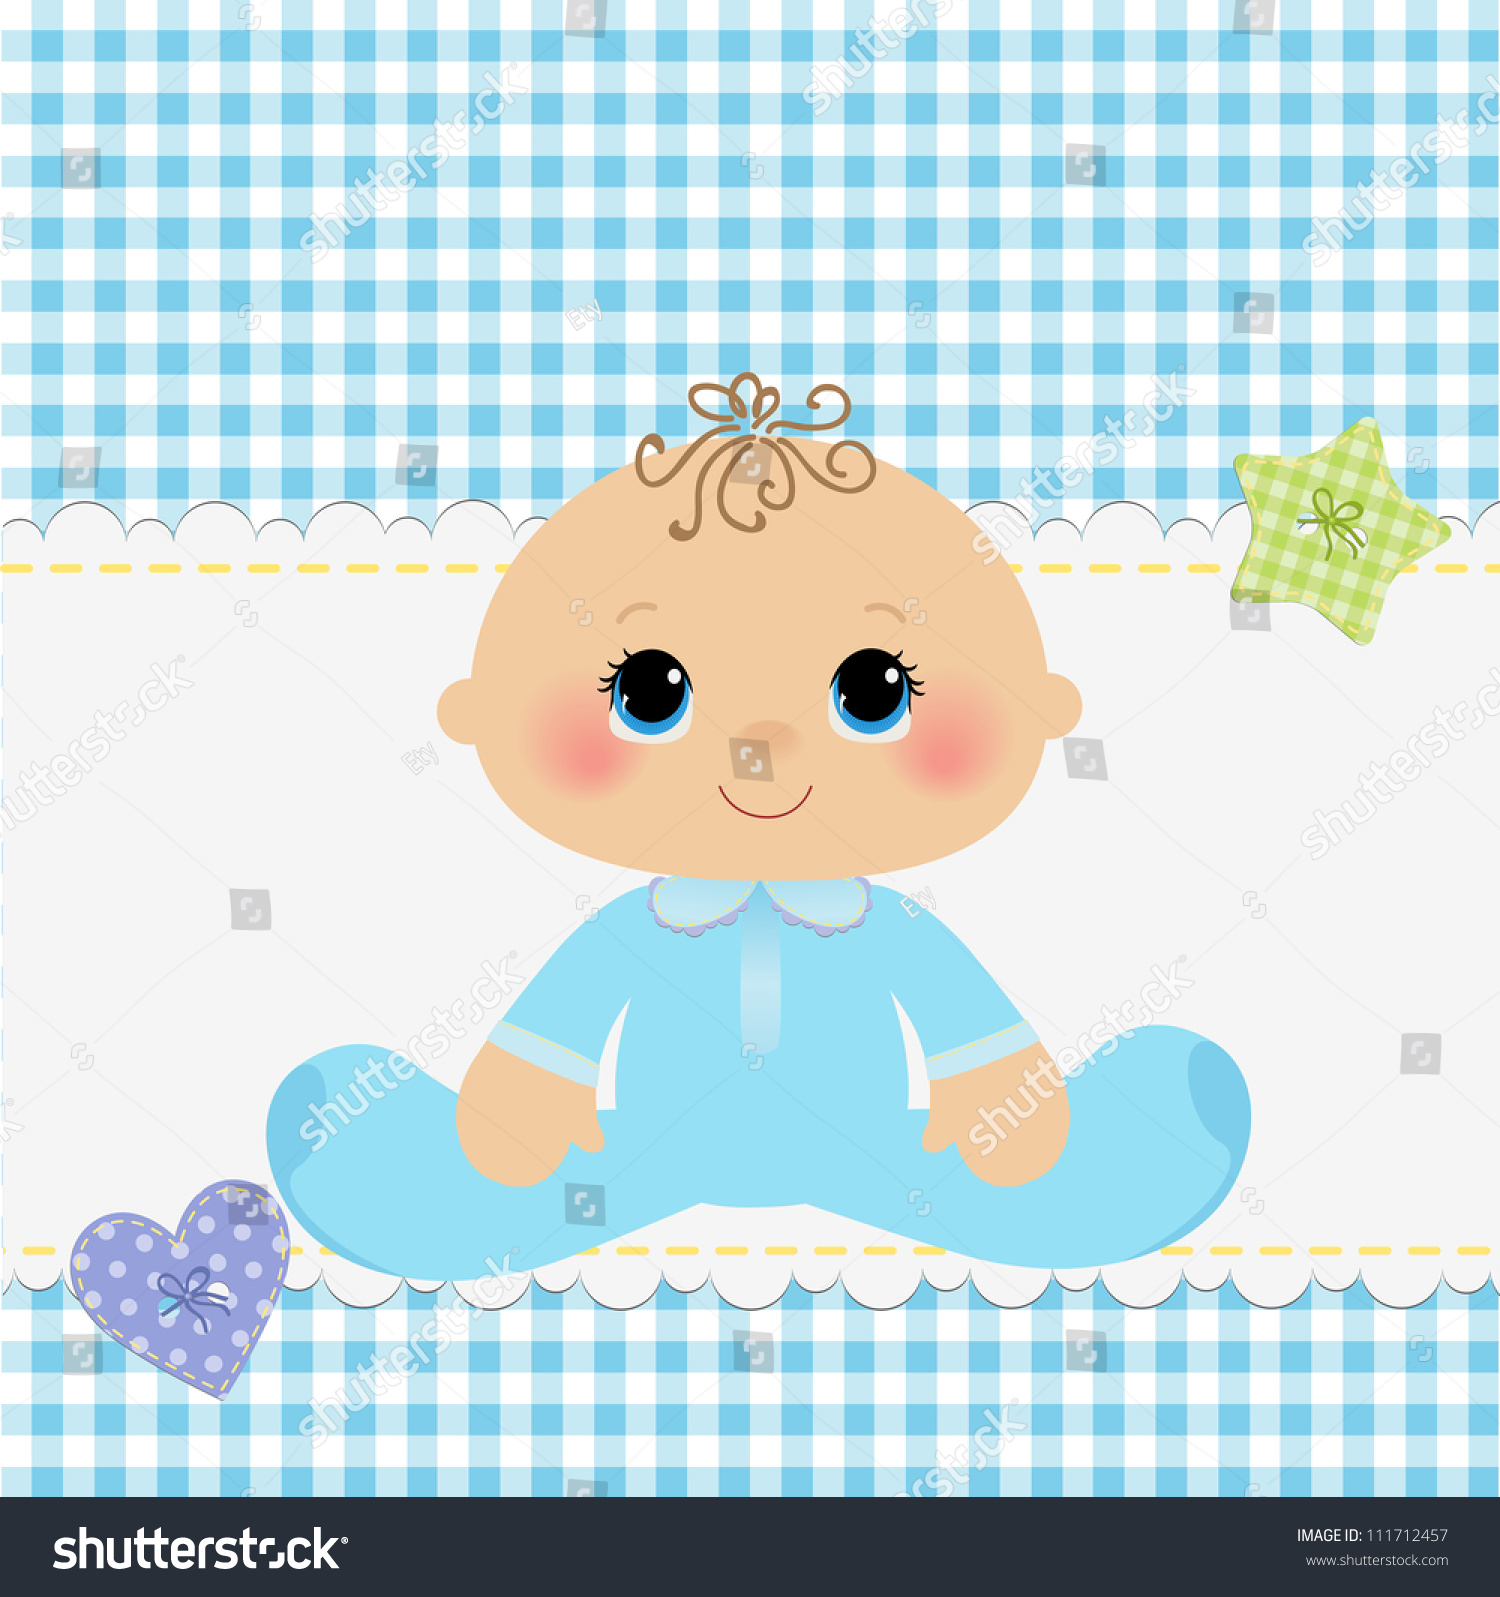 Cute Template Baby Arrival Announcement Card Stock Vector - Baby arrival announcement